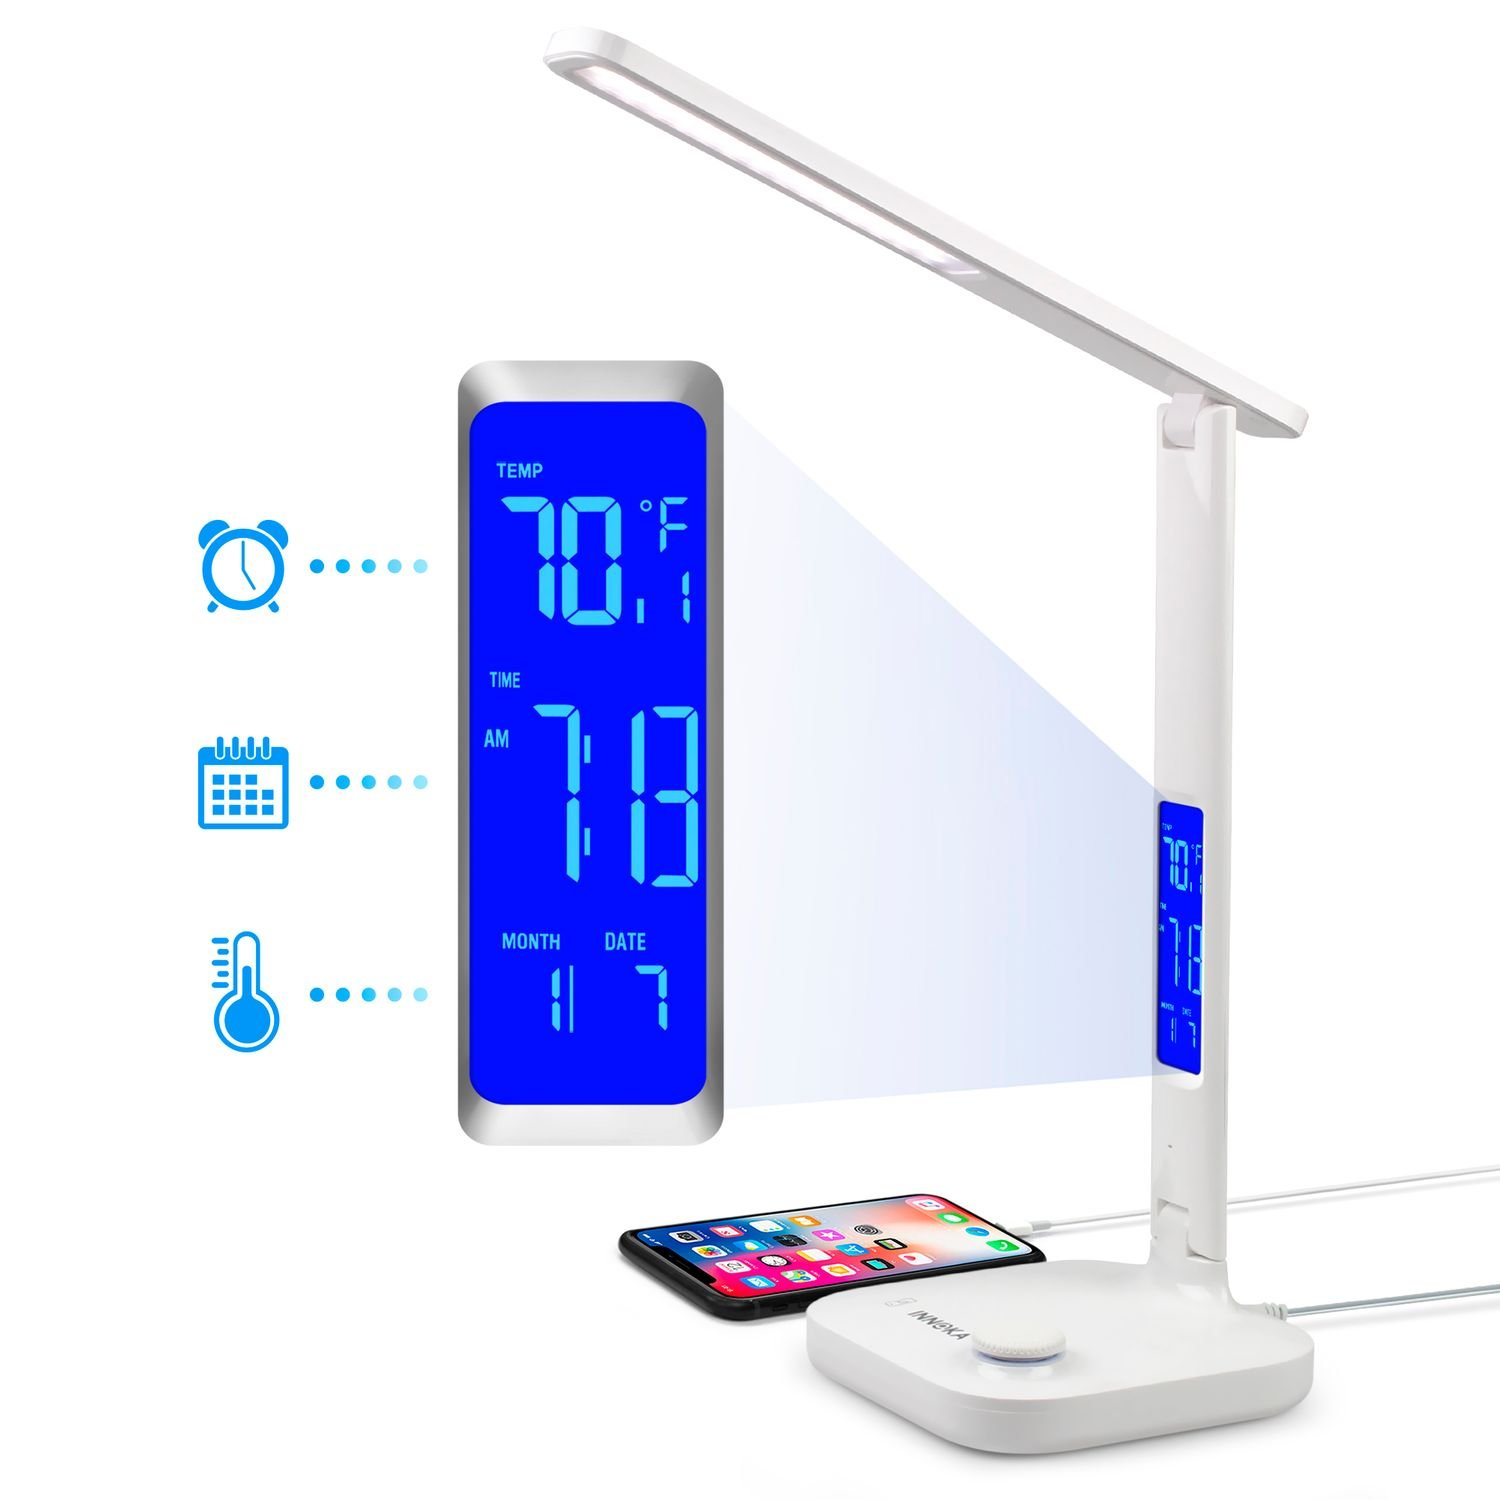 INNOKA Dimmable LED Desk Lamp, Eye Care Lamp, 3 Color Modes, 180 Degree Adjustable, with USB Charging Port [Built in LCD Display] Shows Temperature, Time for Office/Home